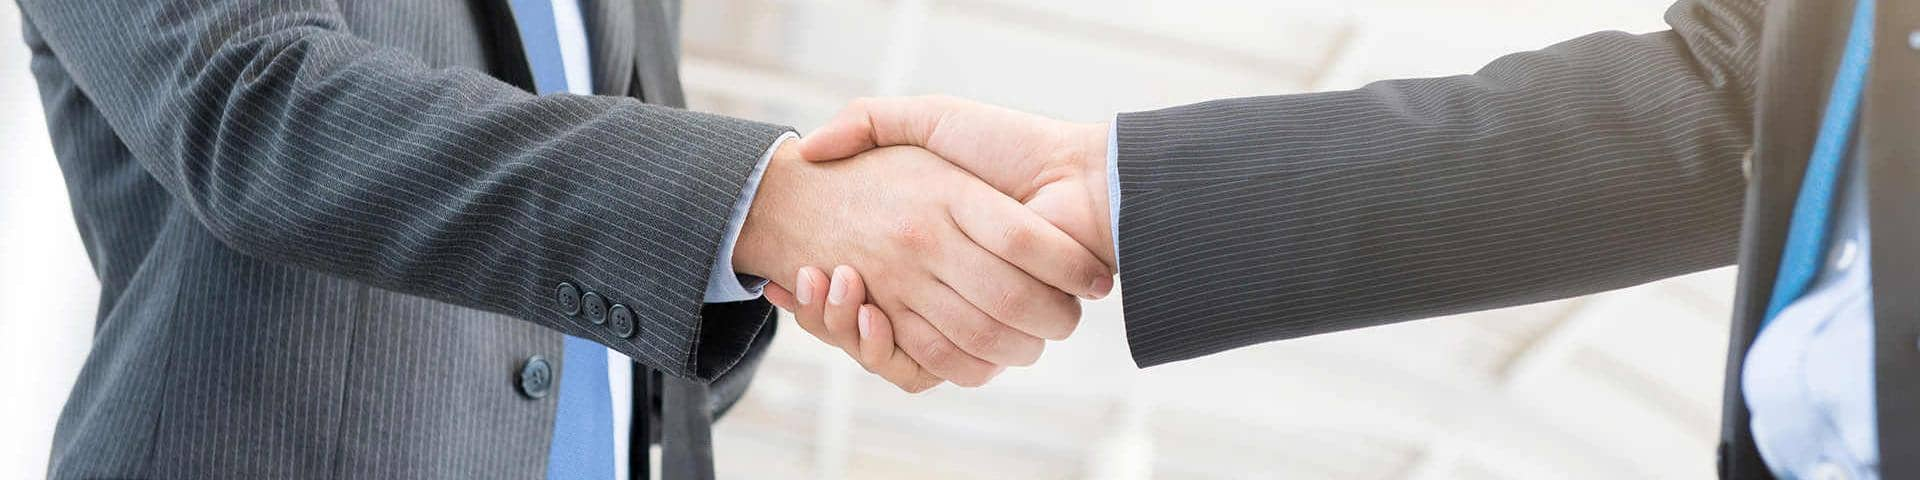 Businessmen shaking hands compliance